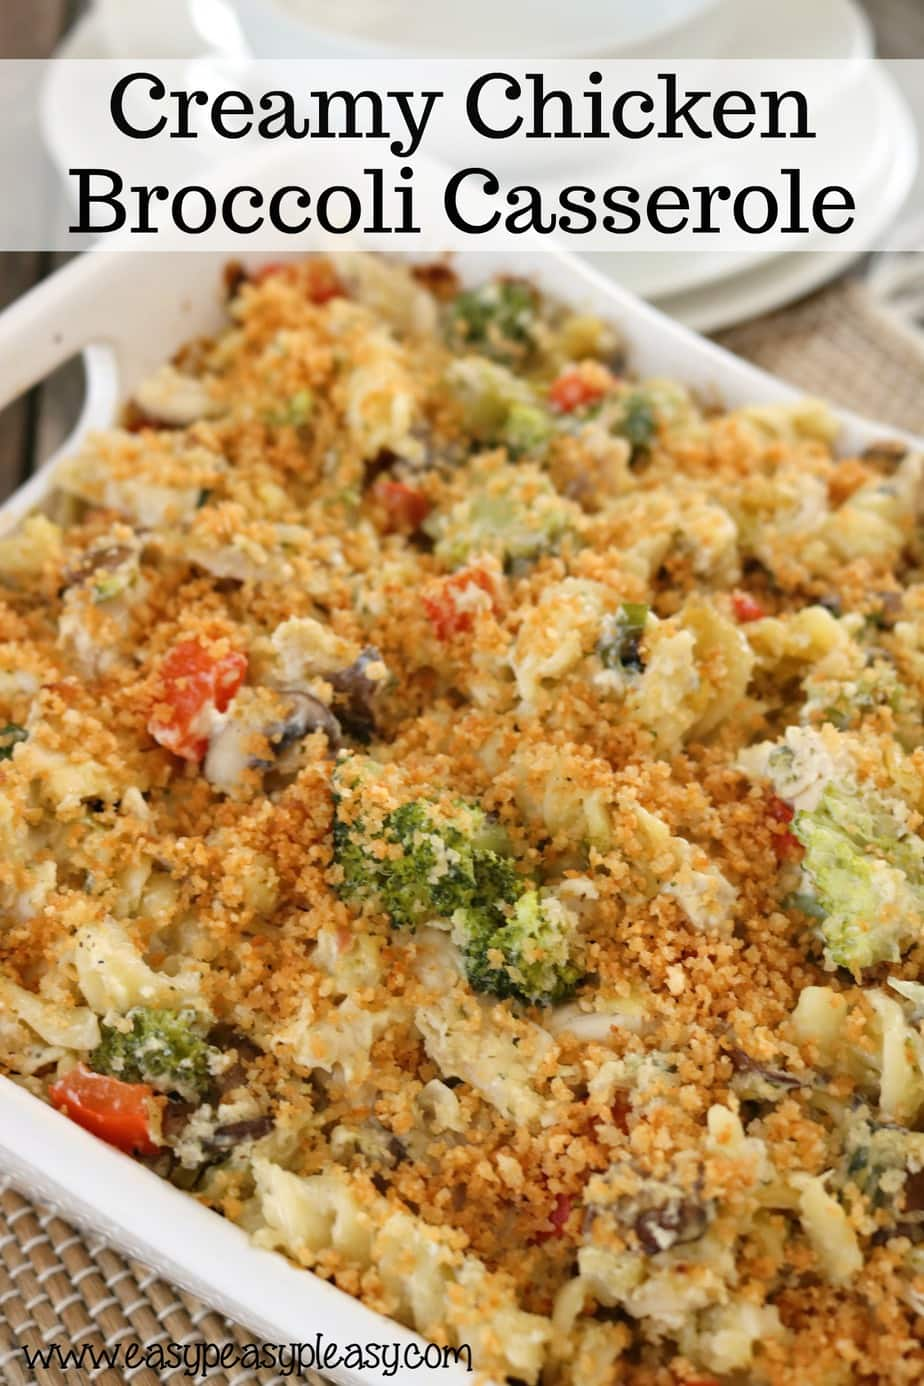 Creamy Chicken Broccoli Casserole is perfect for potlucks, dinner with leftovers and really great for family gatherings.